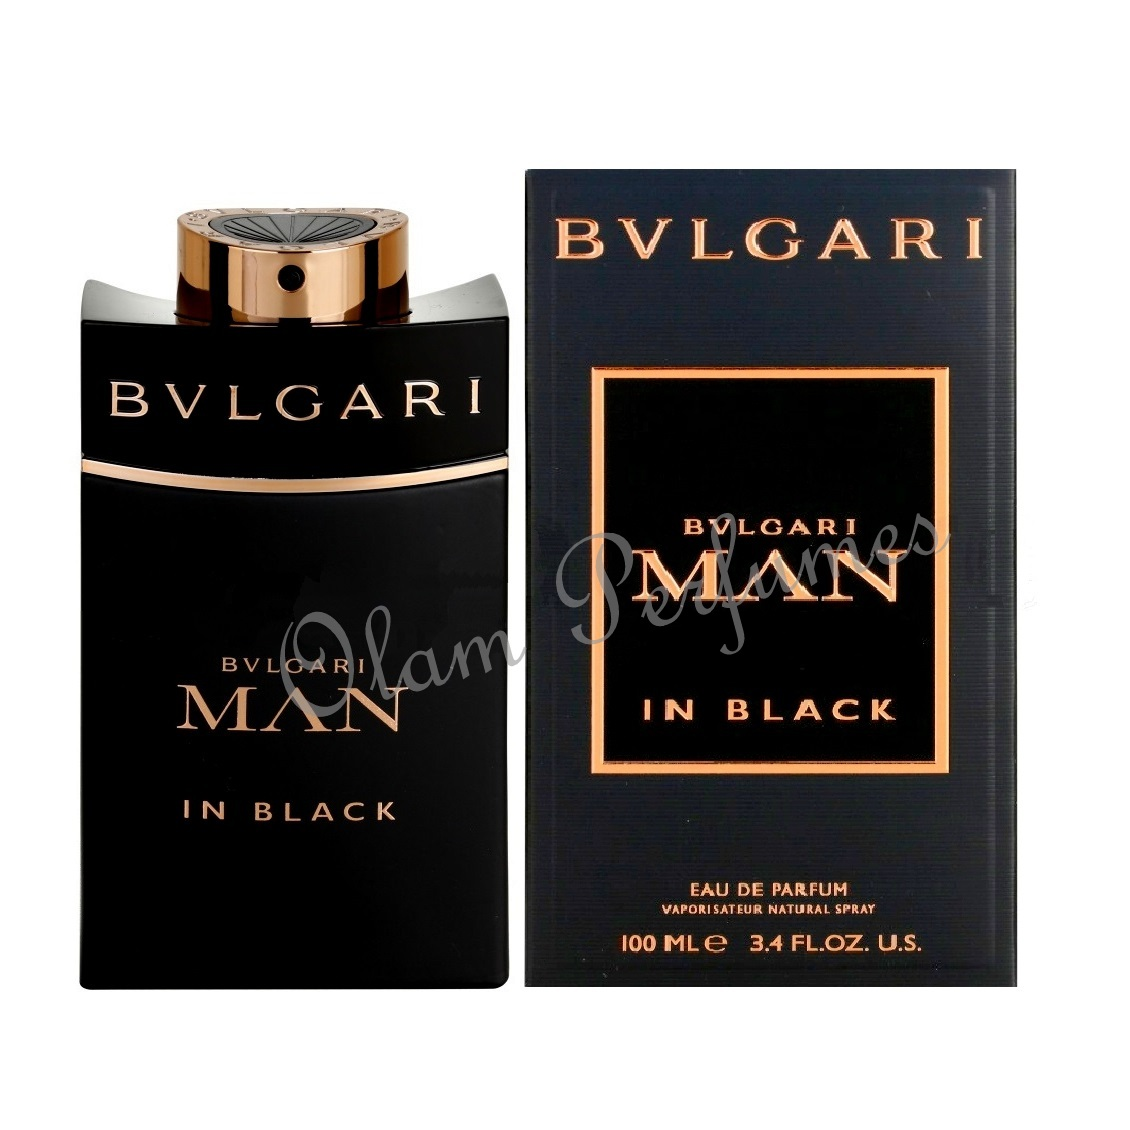 Bvlgari Man in Black Eau de Parfum Spray 3.4oz 100ml